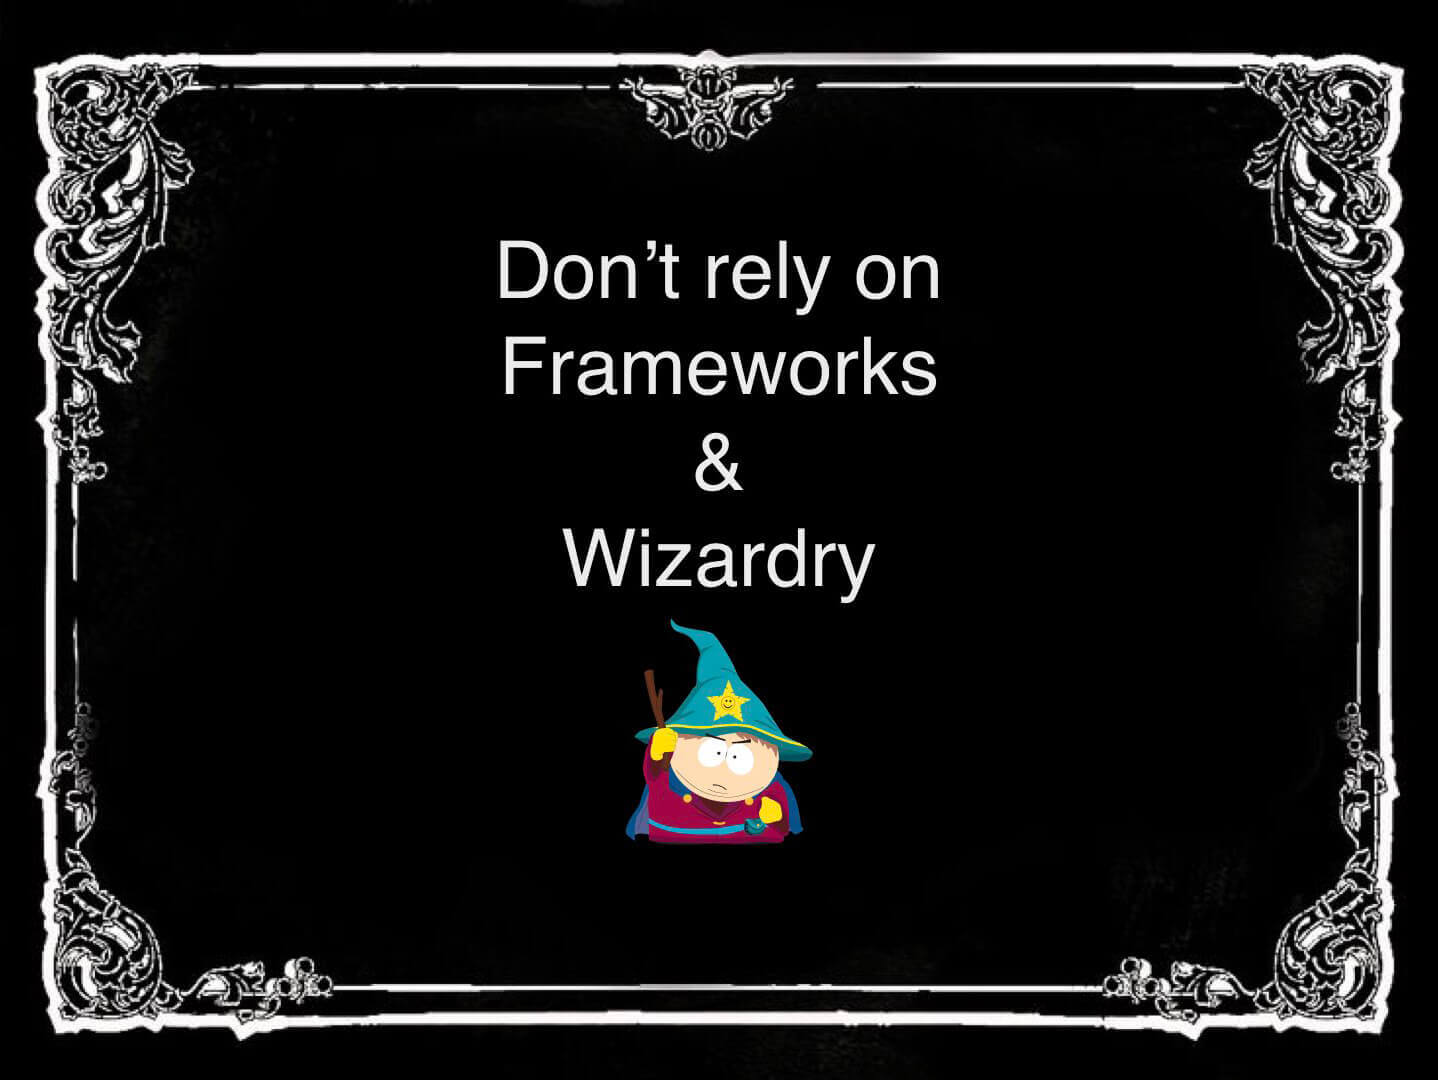 Daniel Khan thinks you shouldn't rely on frameworks and wizardry